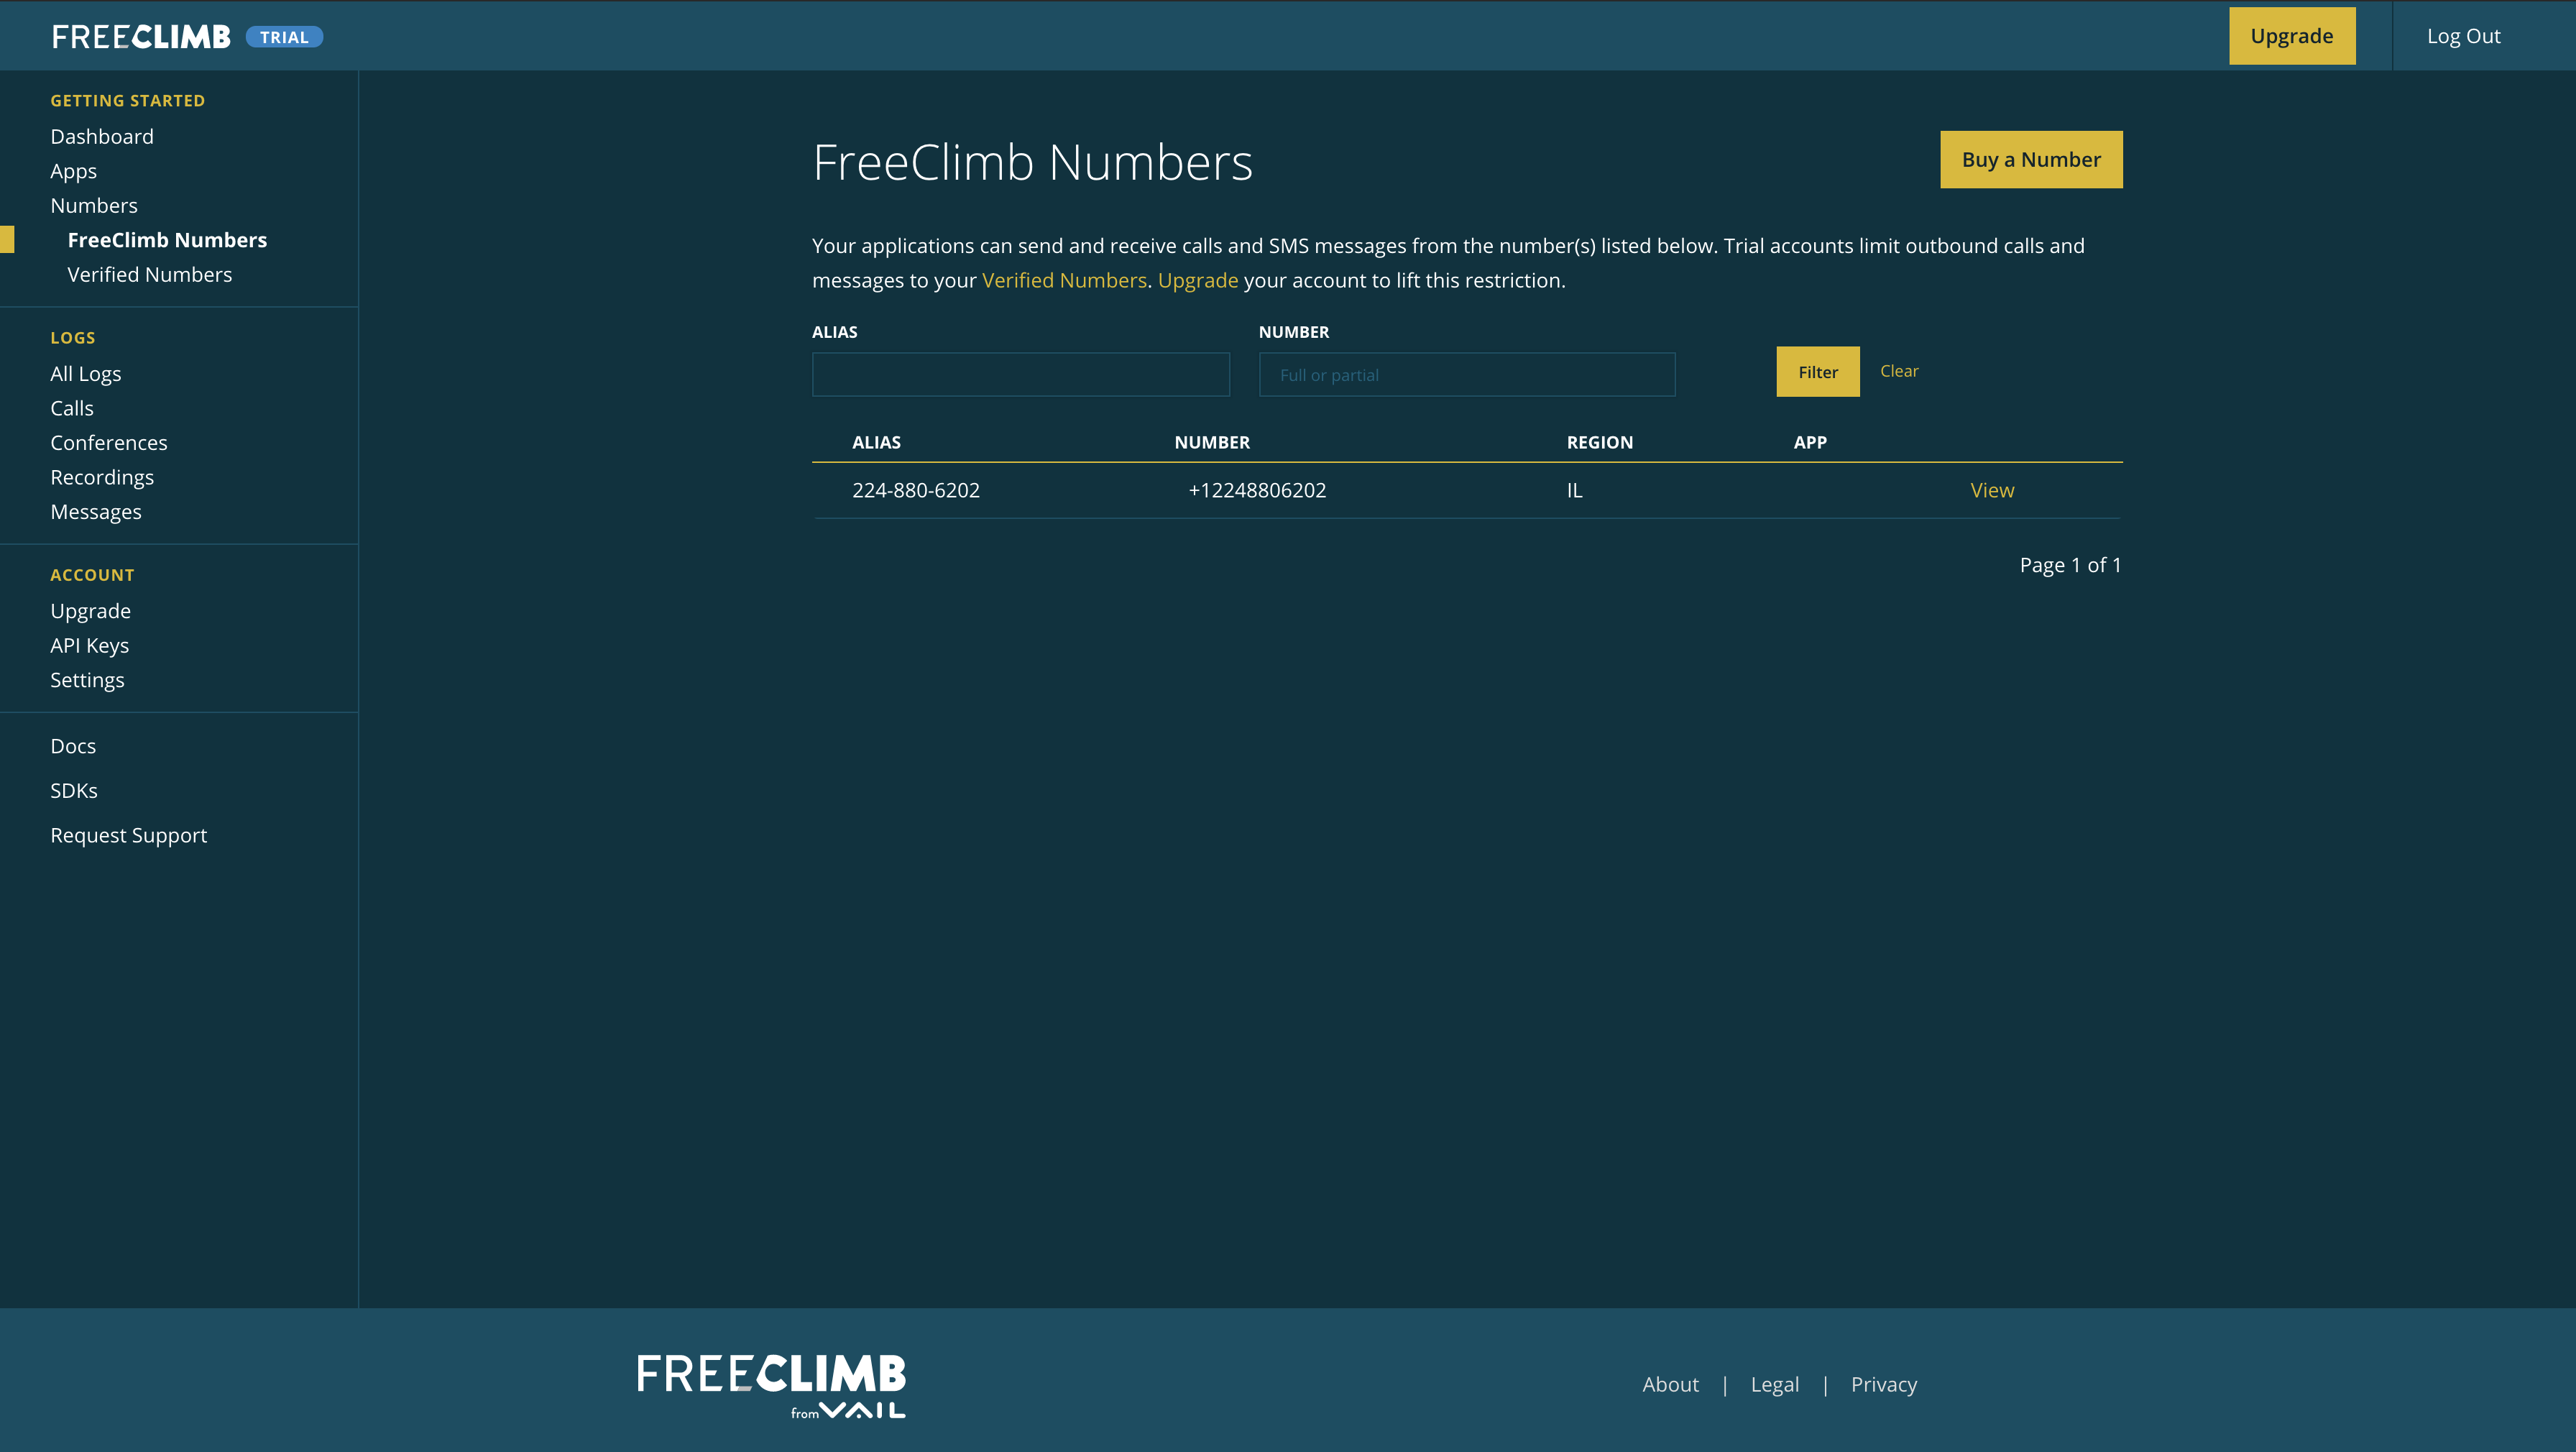 The Numbers page lists all the FreeClimb numbers on your account.